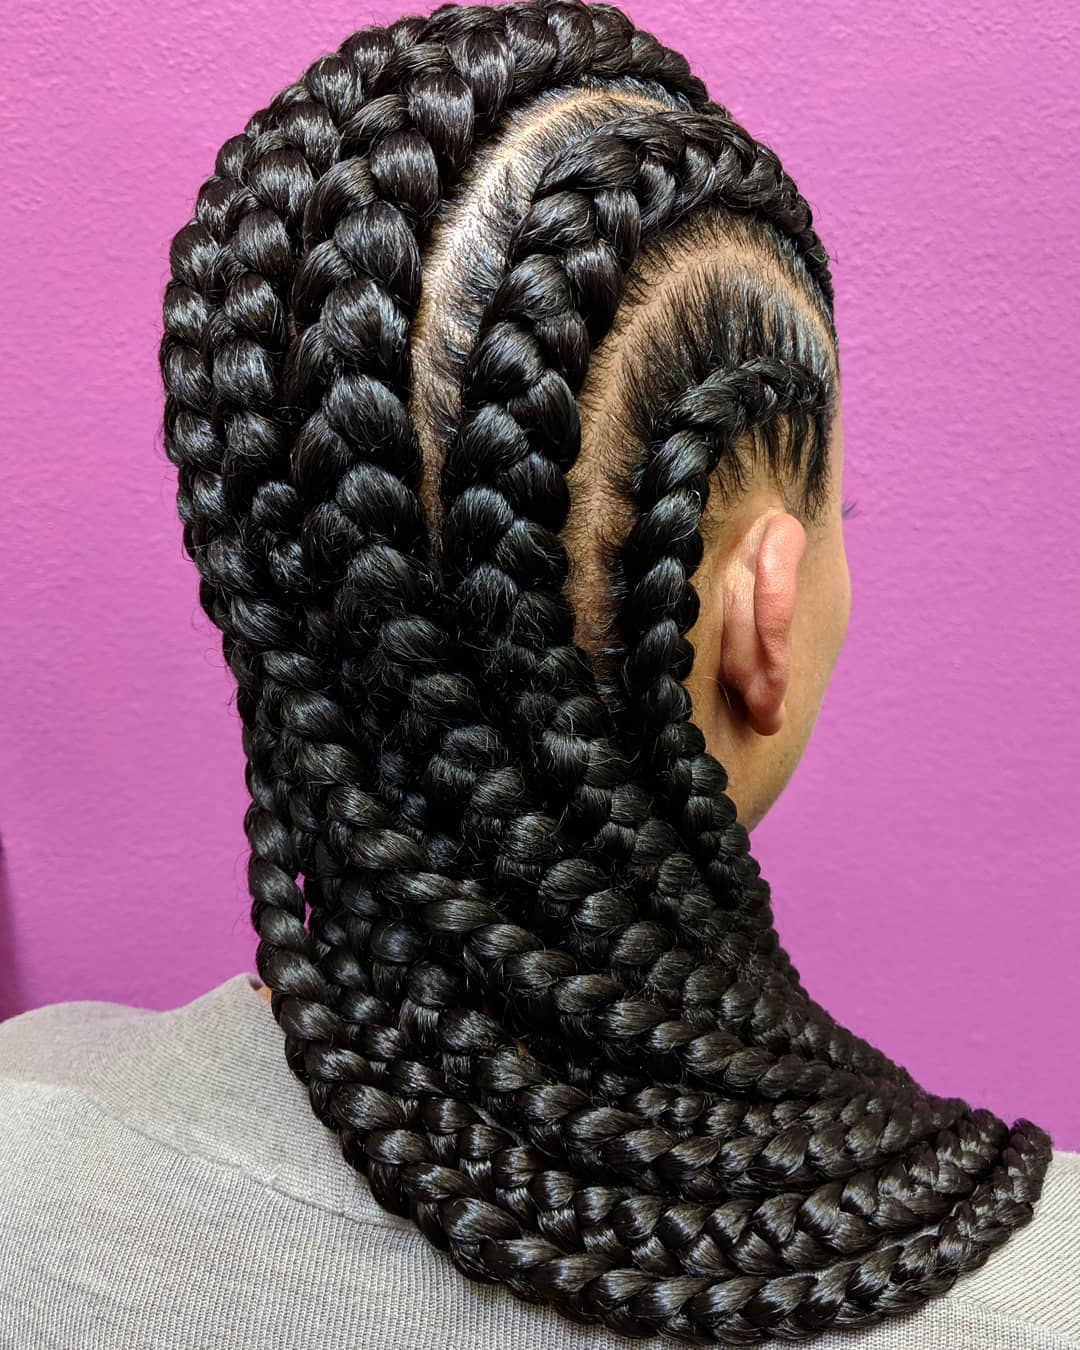 45 Hot Cornrow Hairstyles 2019 | How To Cornrow Braid Your ...